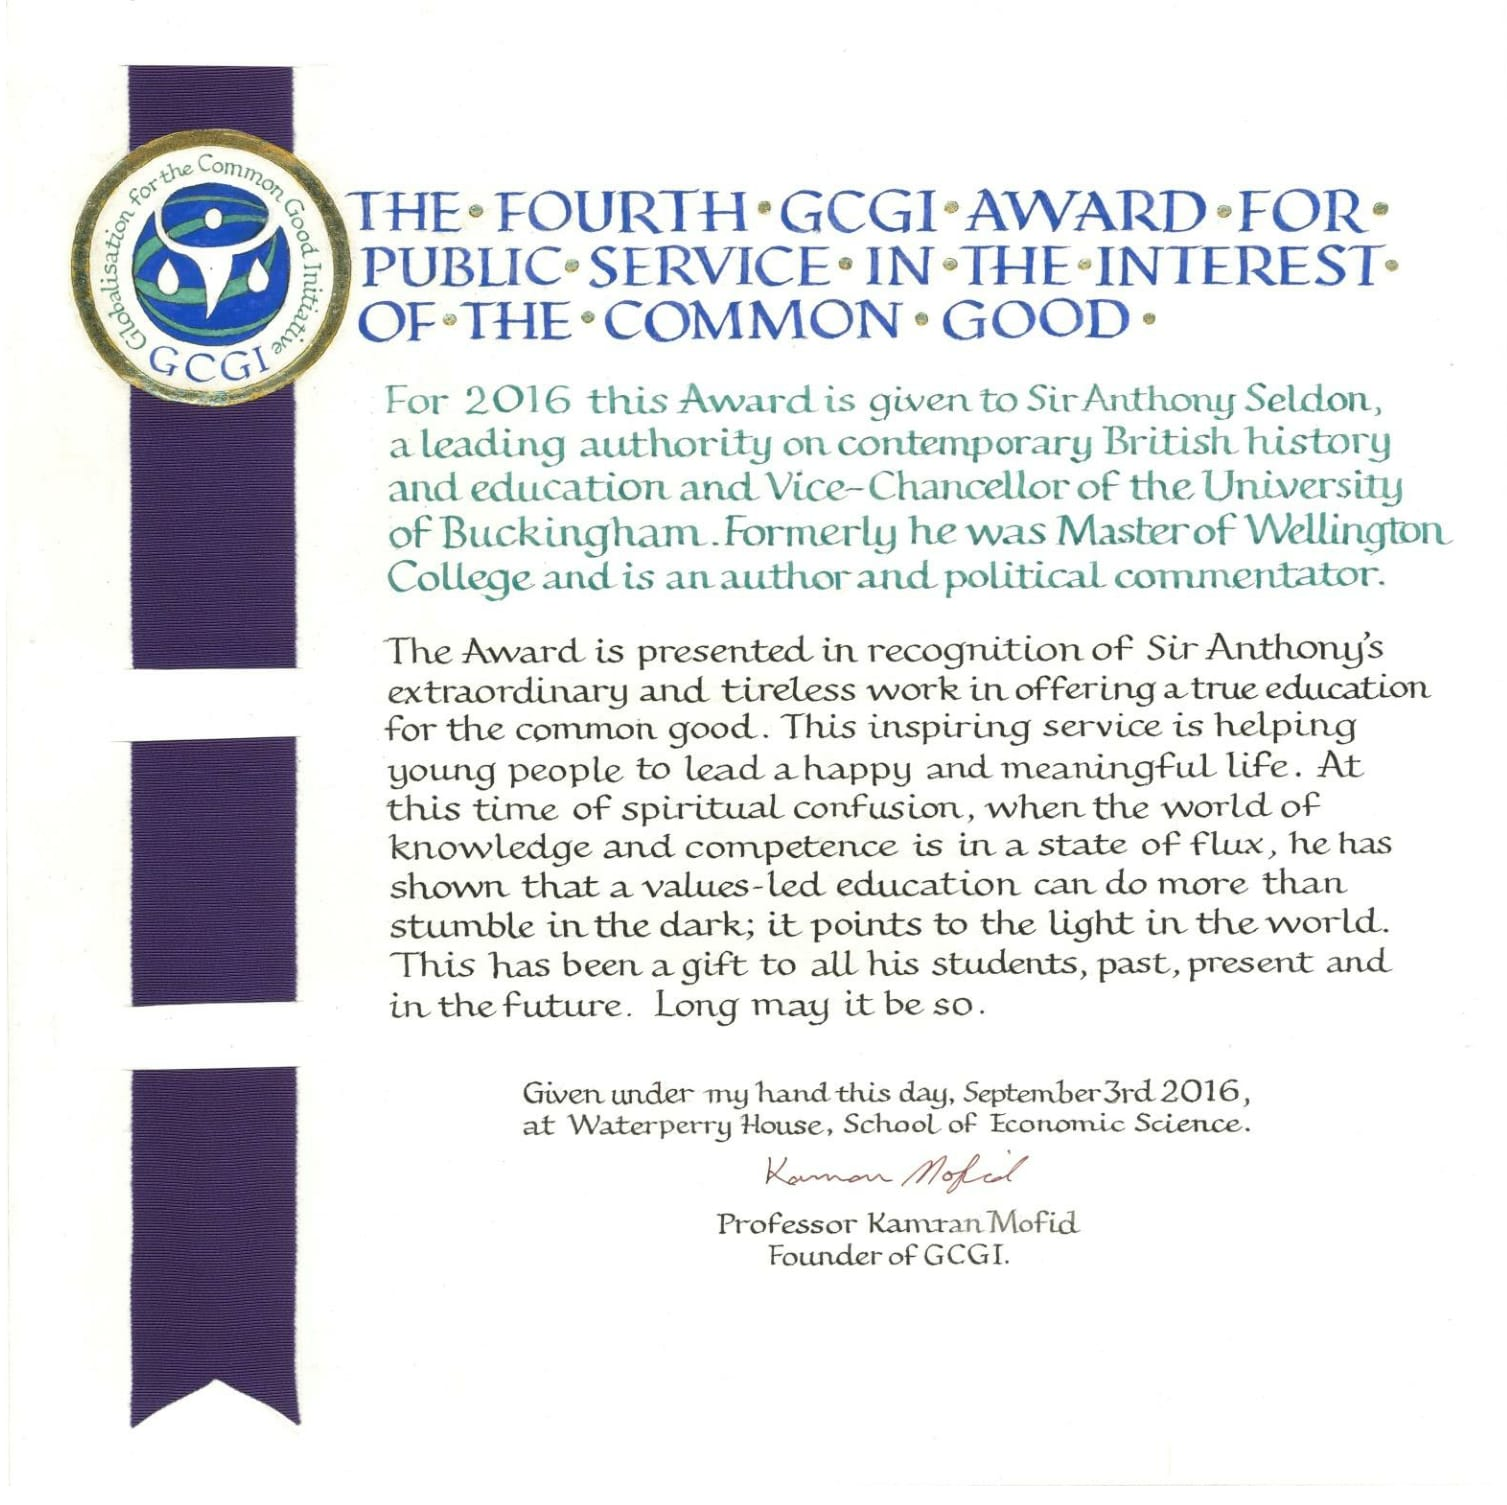 The award was presented to sir anthony at the conference gala dinner hosted at waterperry house on the evening of saturday 3rd september 2016